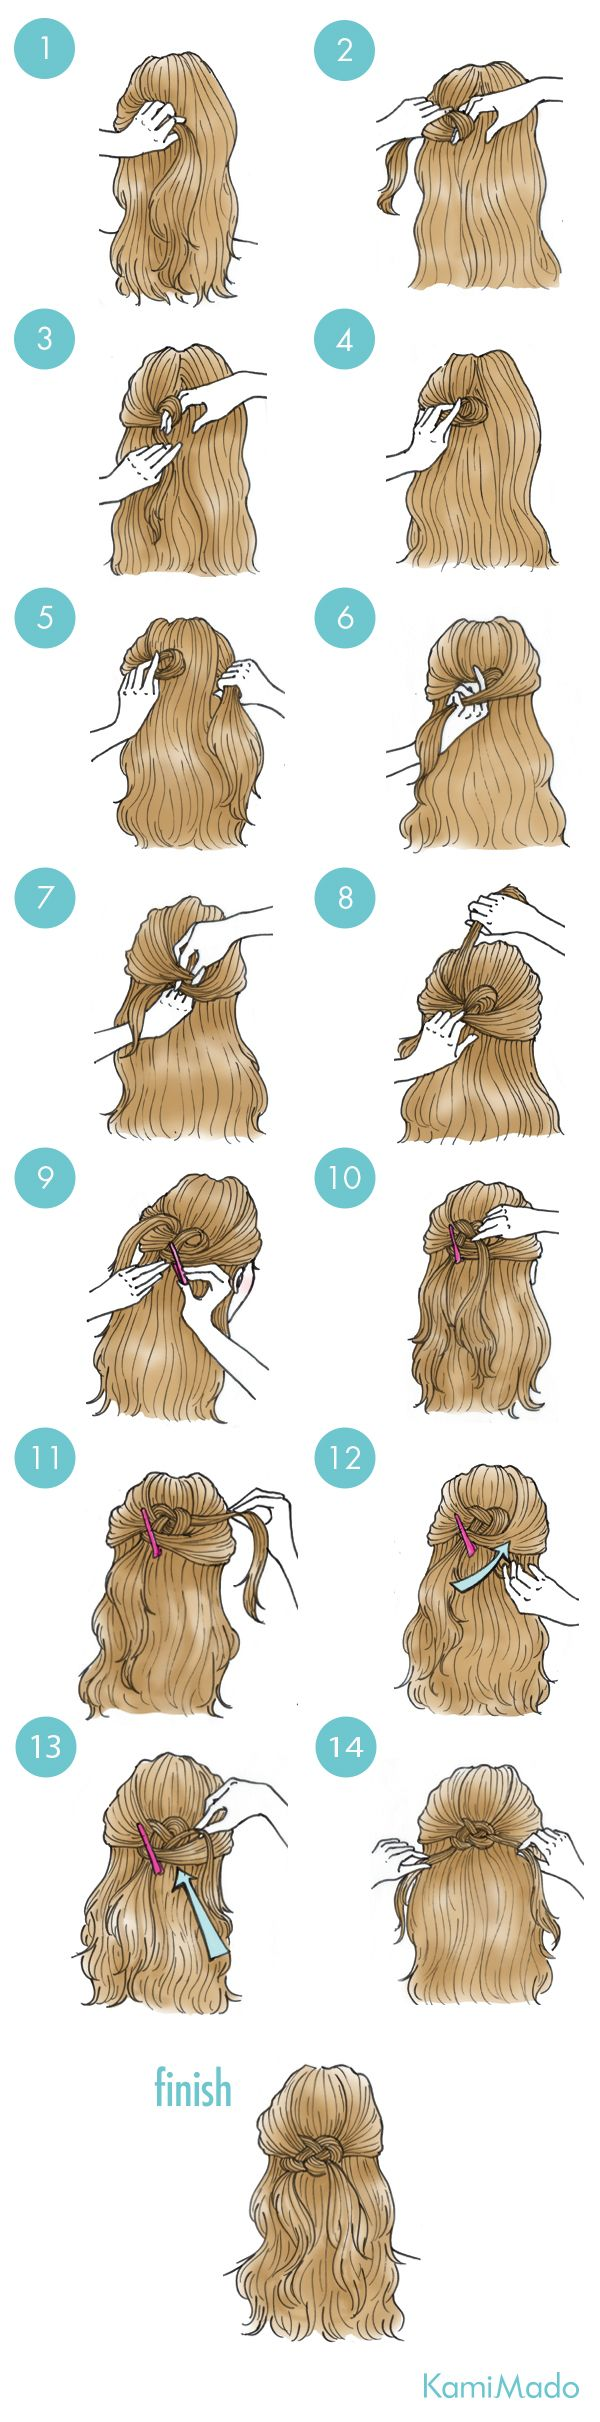 KamiMado: Dozens of Japanese hair tutorials with step-by-step illustrations